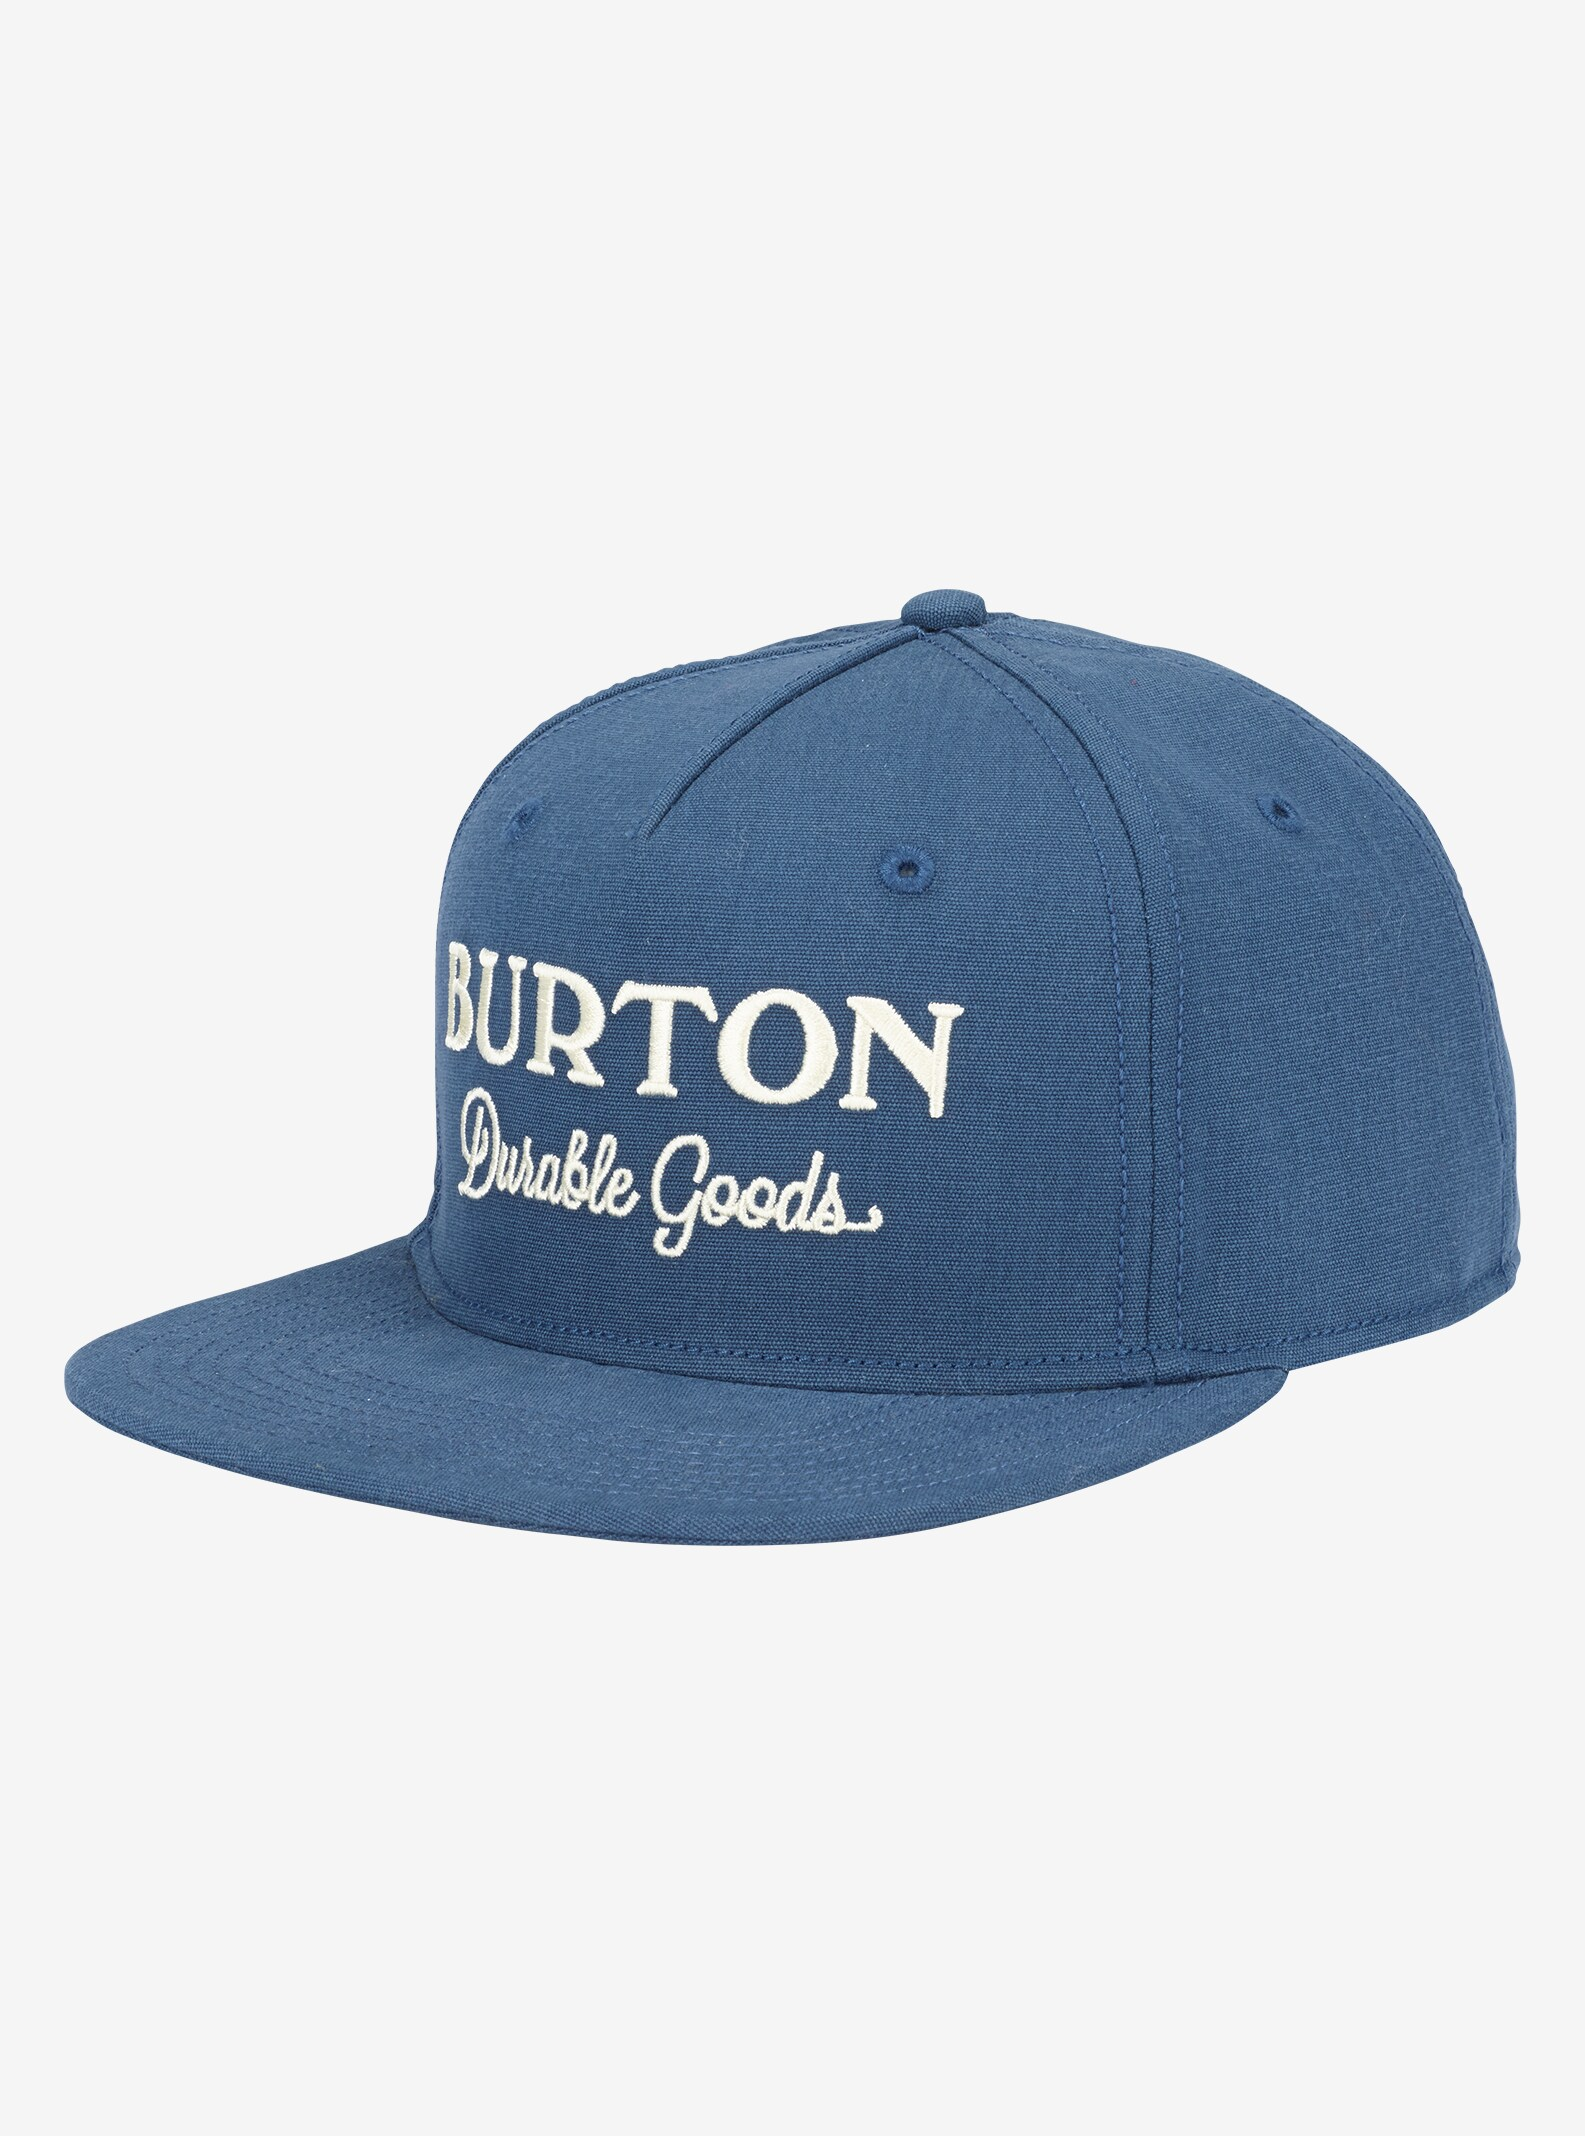 Burton Durable Goods Cap angezeigt in Indigo